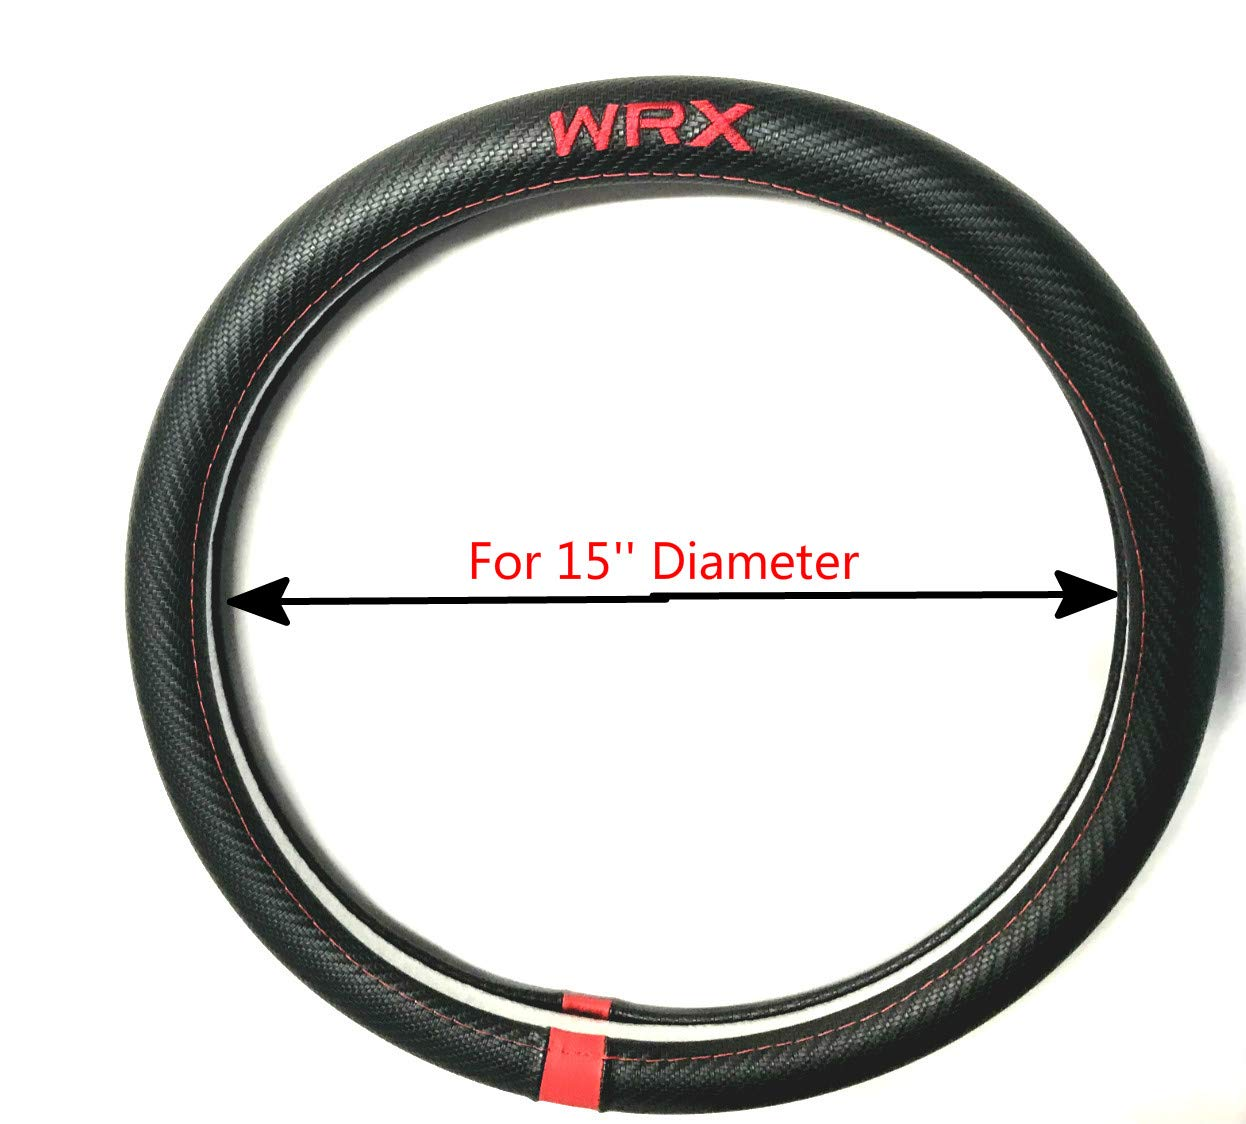 Tuesnut Carbon Fiber Style PU WRX Steering Wheel Cover 15 Diameter 5559034184